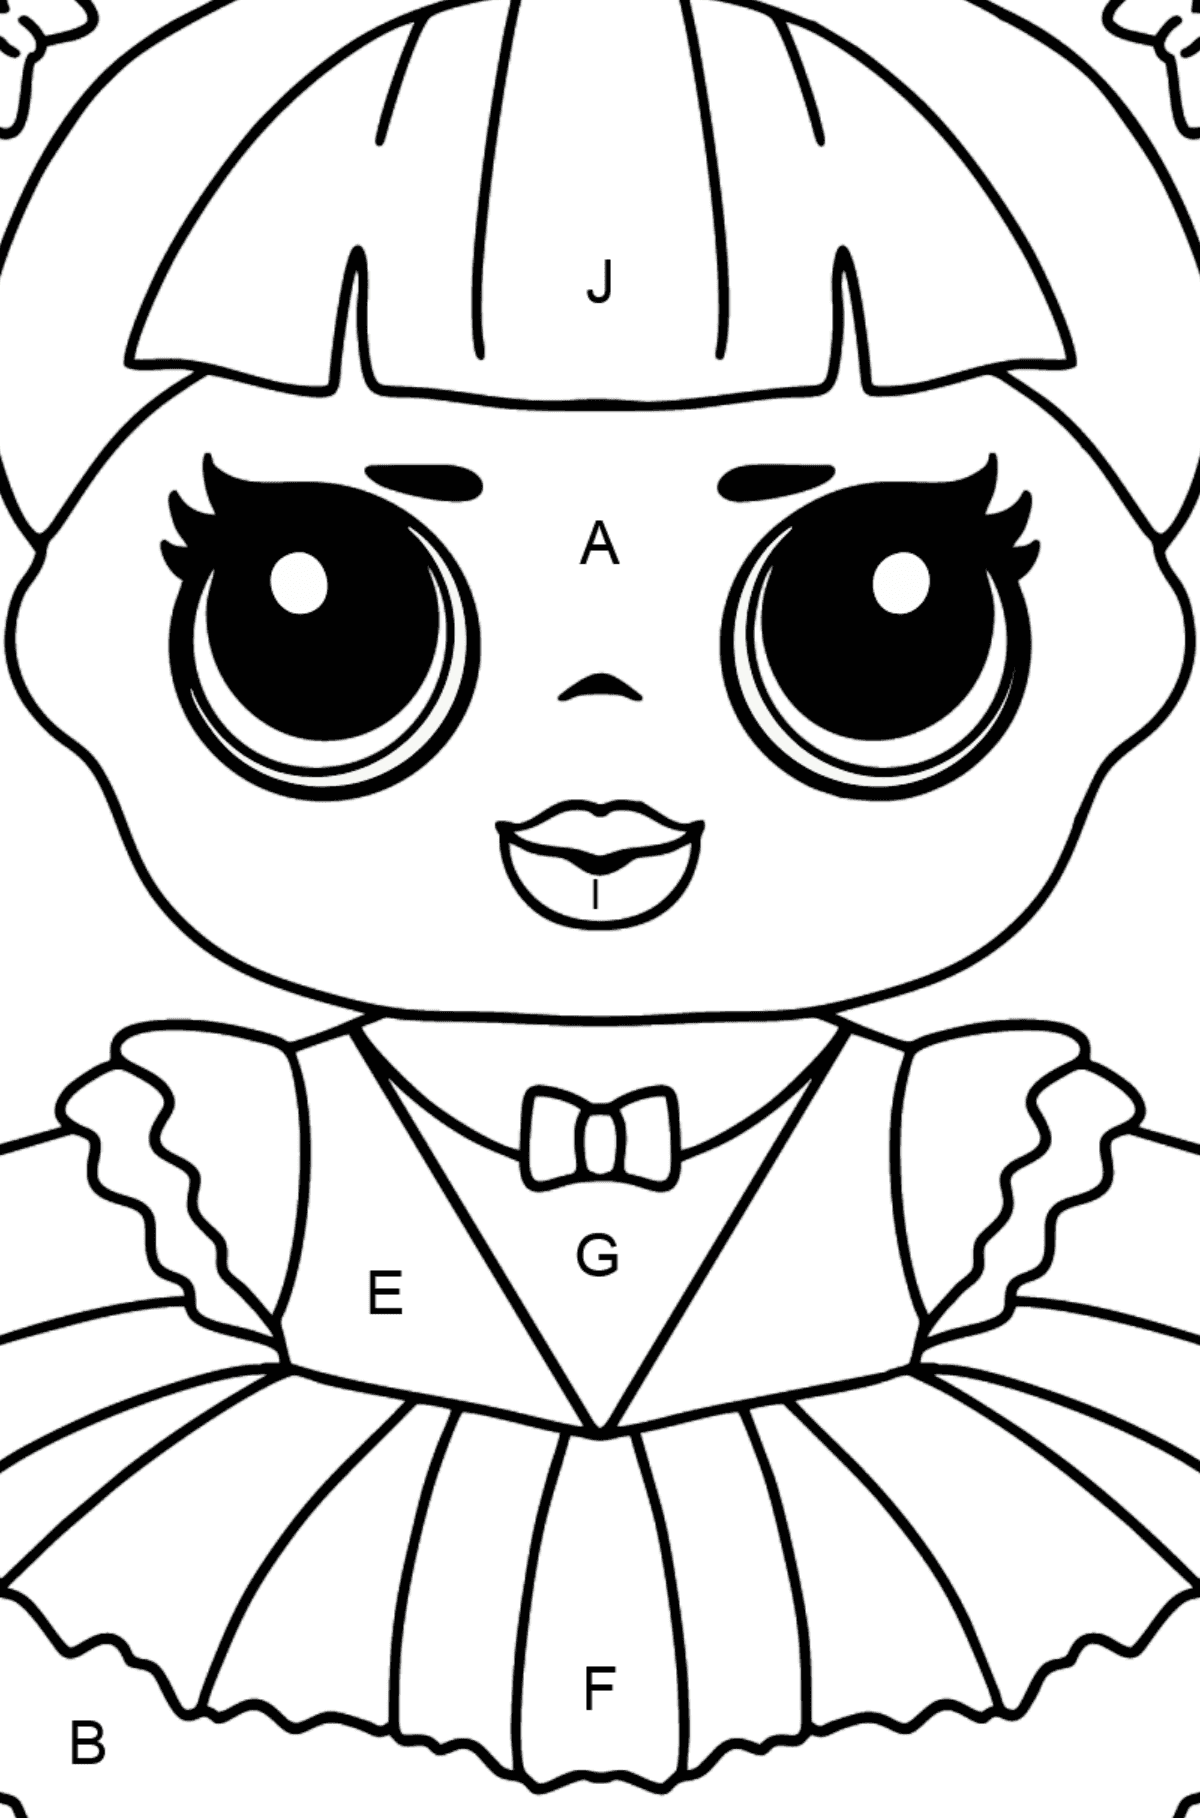 L.O.L. Surprise Doll Center Stage - Coloring by Letters for Kids